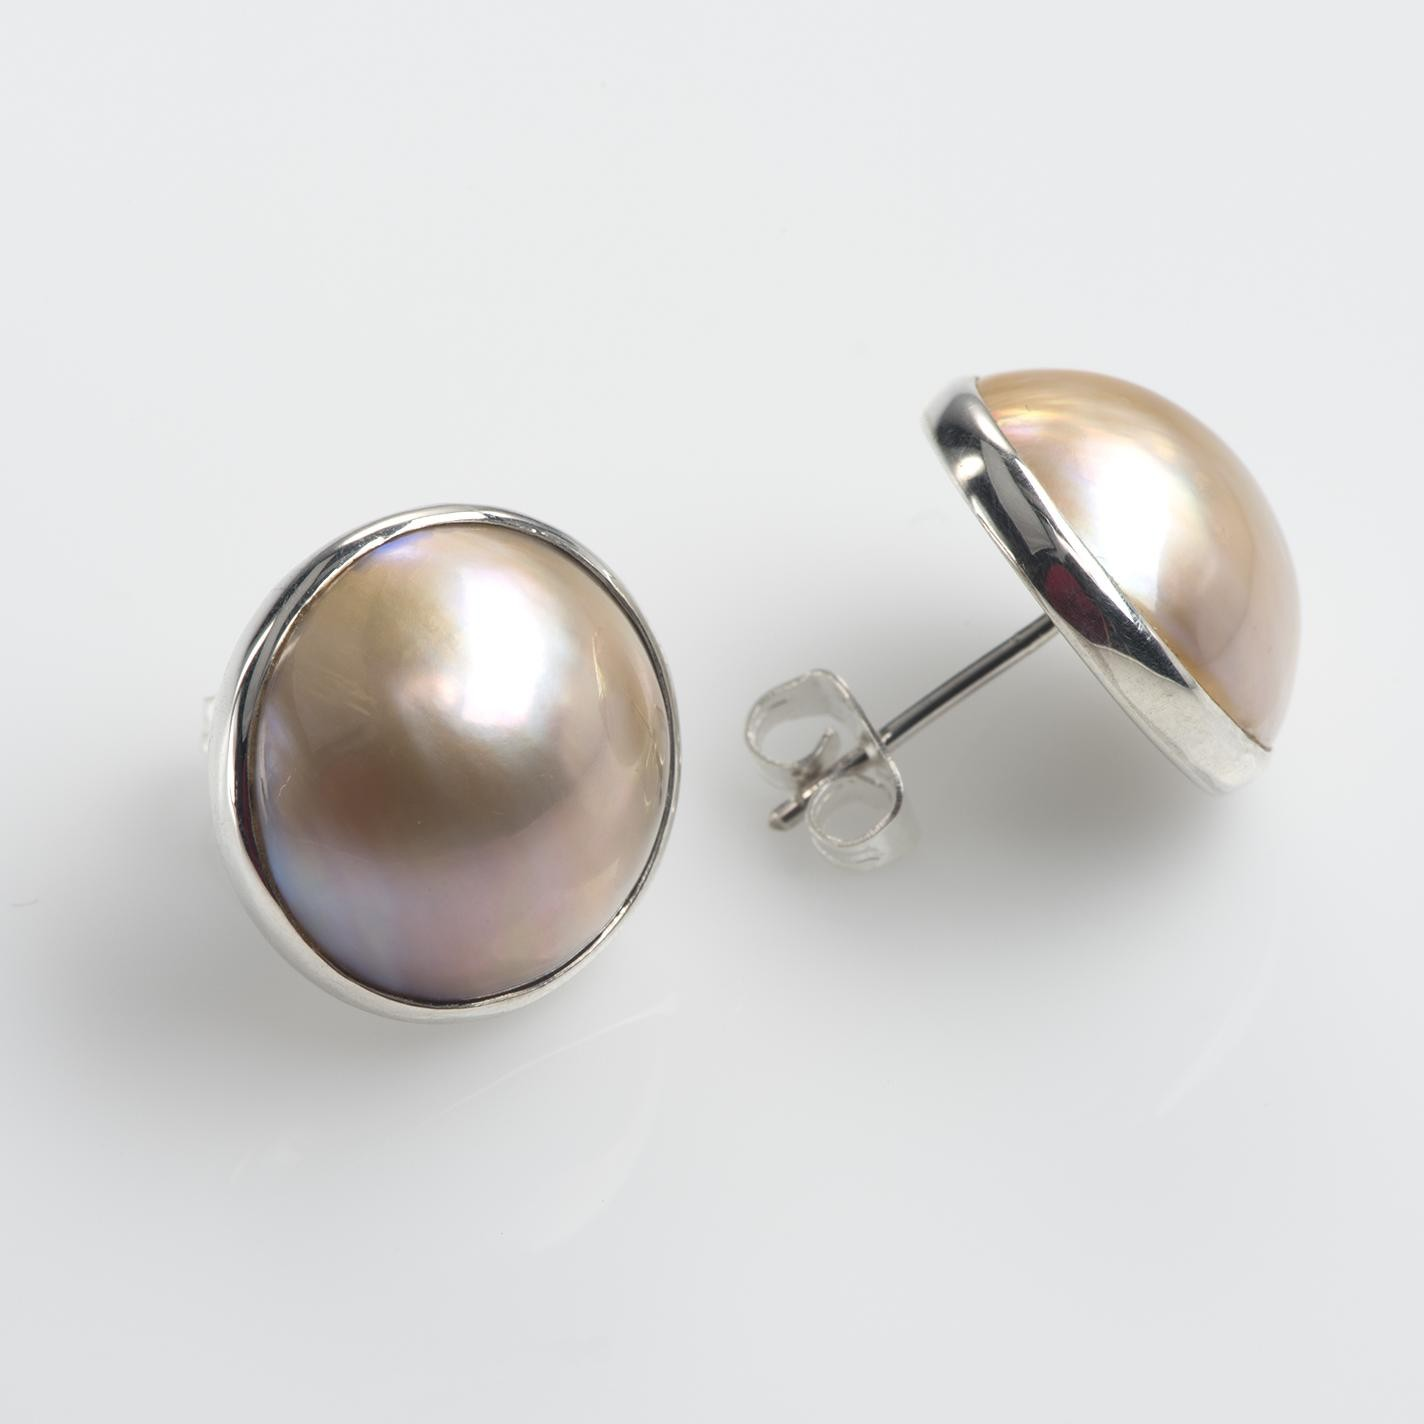 Golden Yellow Single Mabe Pearl Stud Earrings